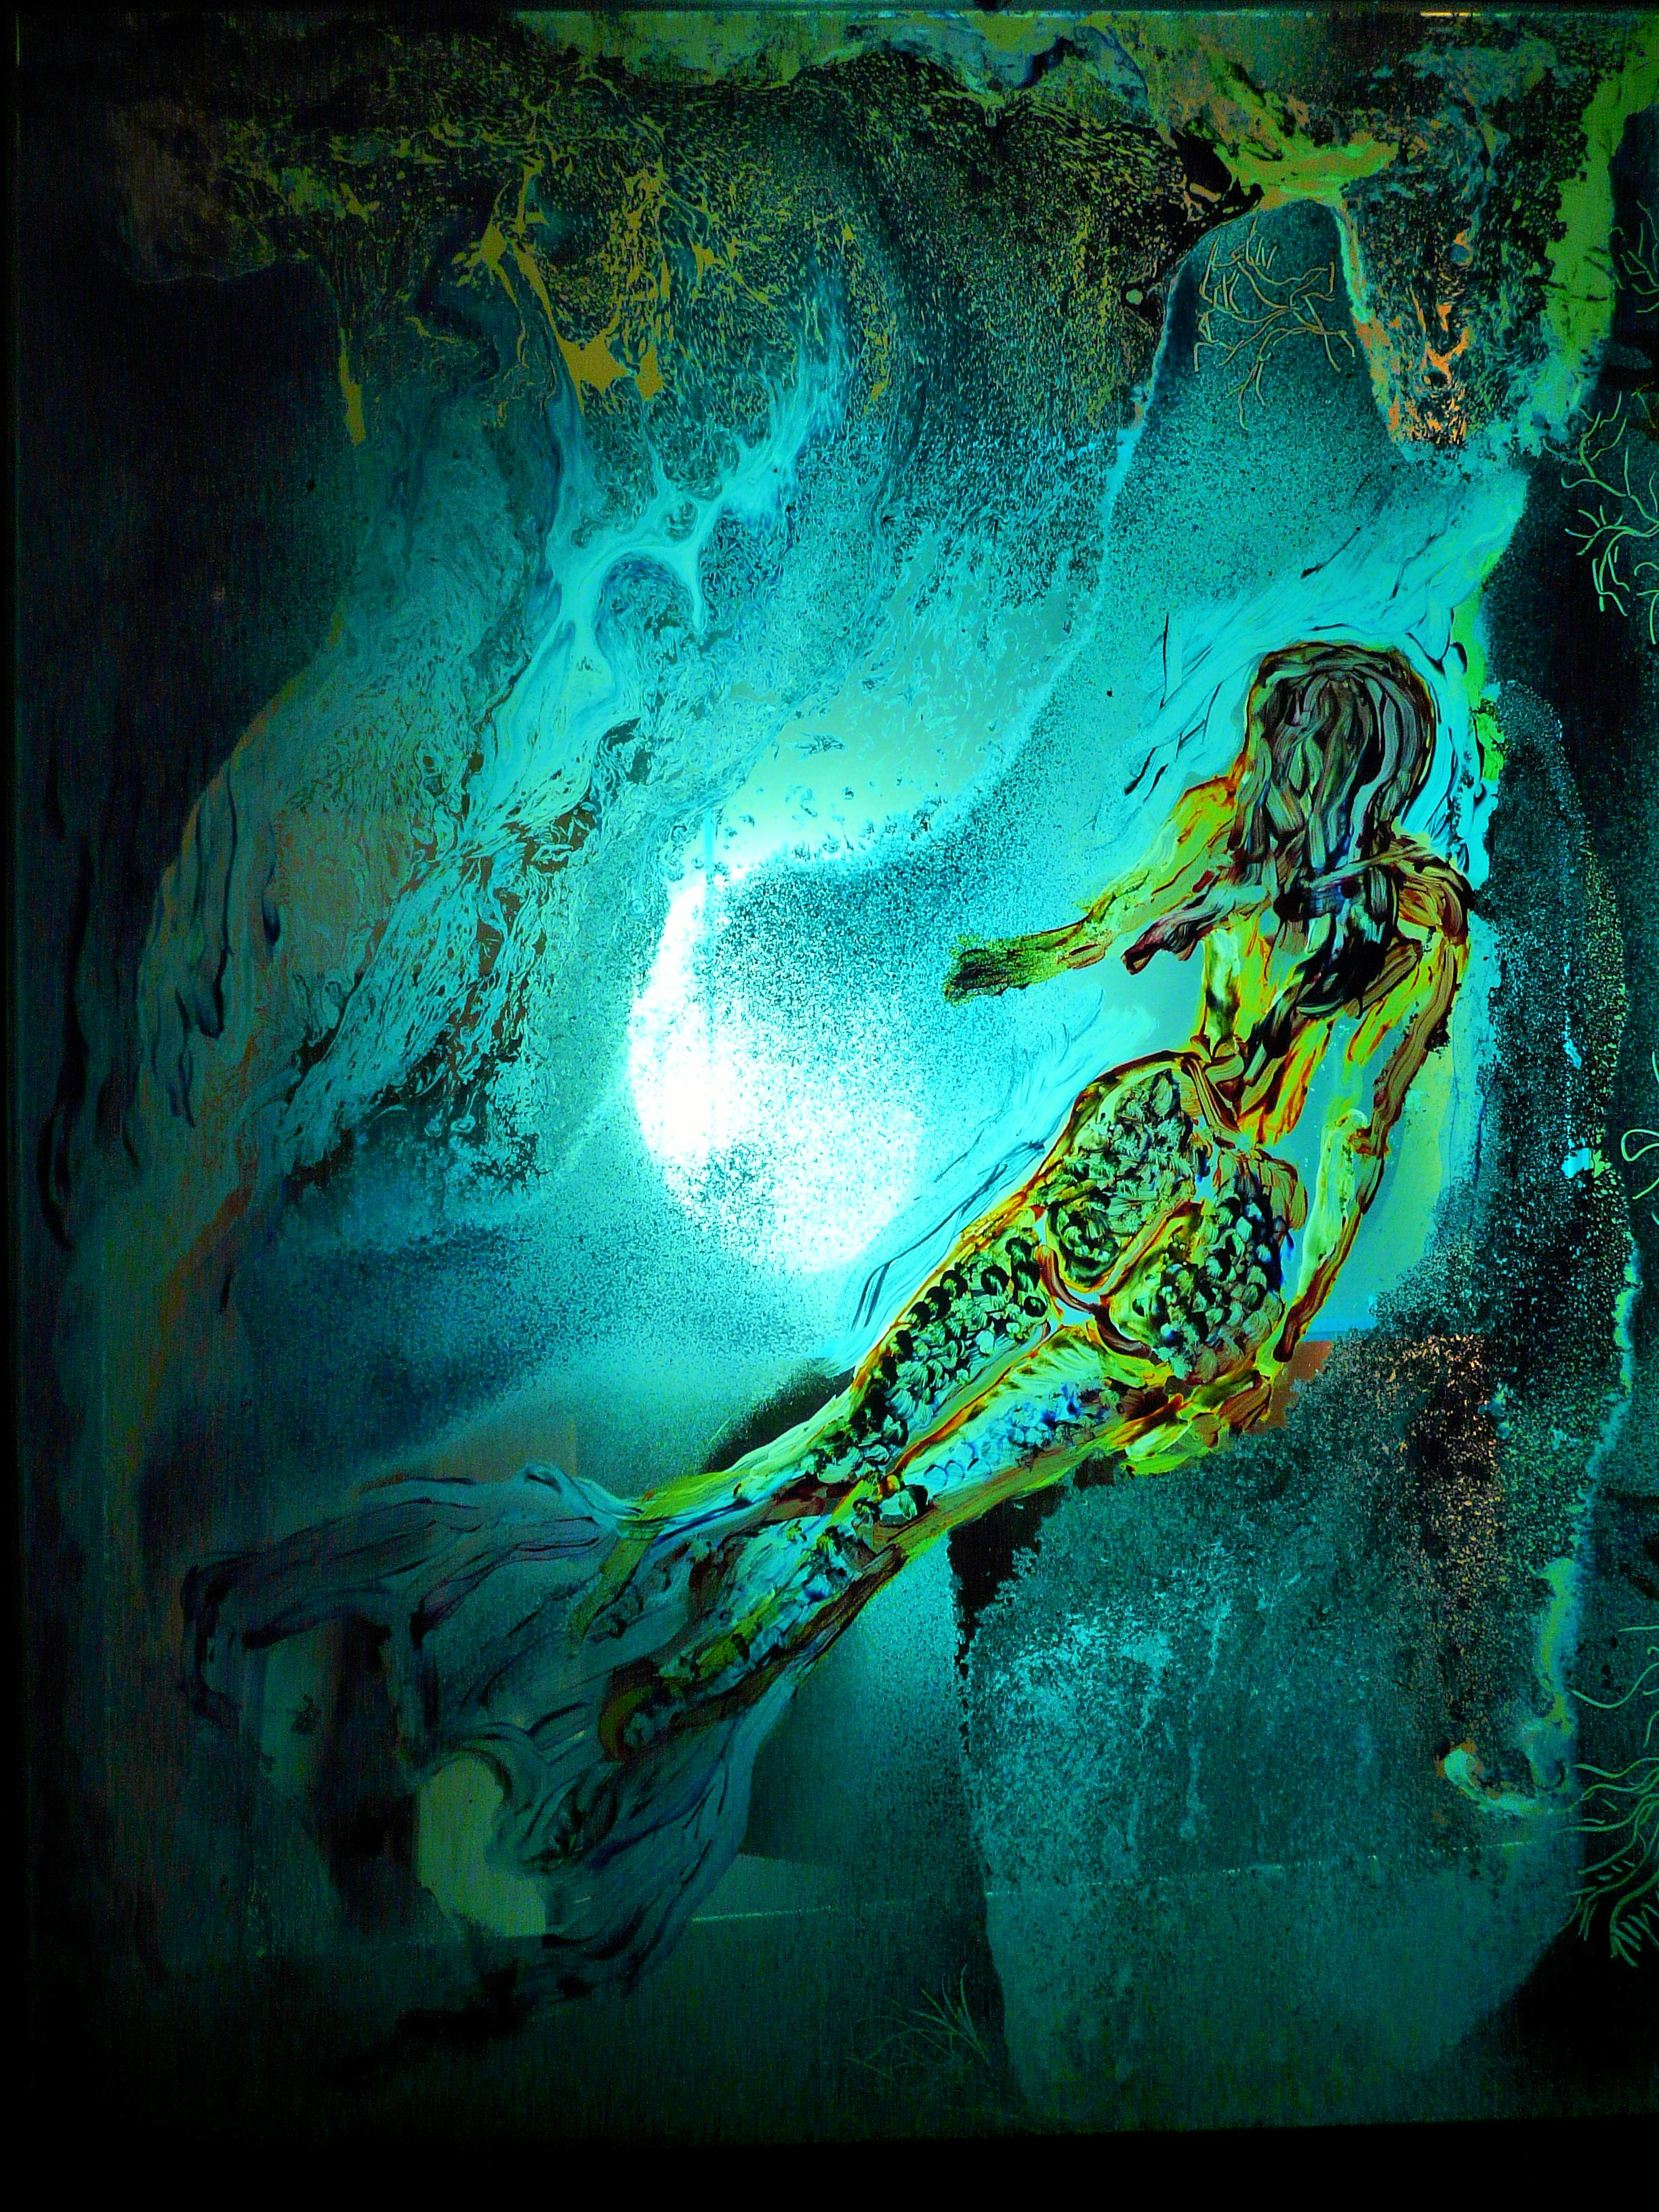 the mermaid (at night)